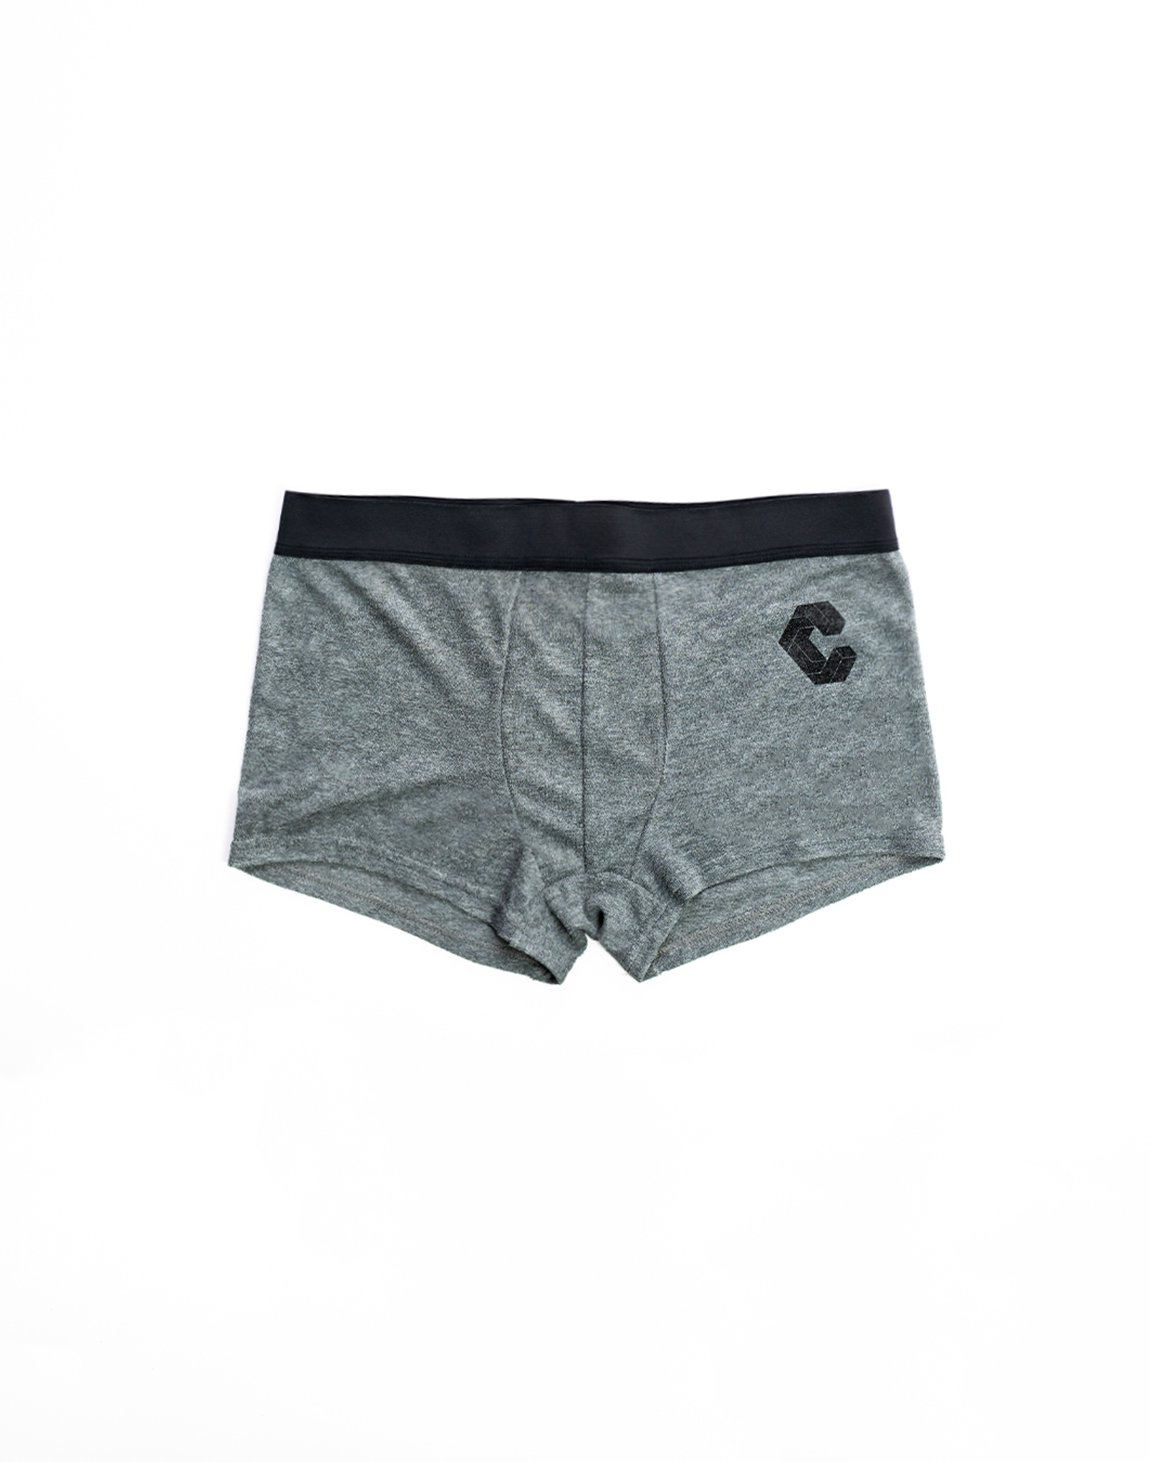 <img class='new_mark_img1' src='https://img.shop-pro.jp/img/new/icons1.gif' style='border:none;display:inline;margin:0px;padding:0px;width:auto;' />LOGO BOXER PANTS 01 GRAY